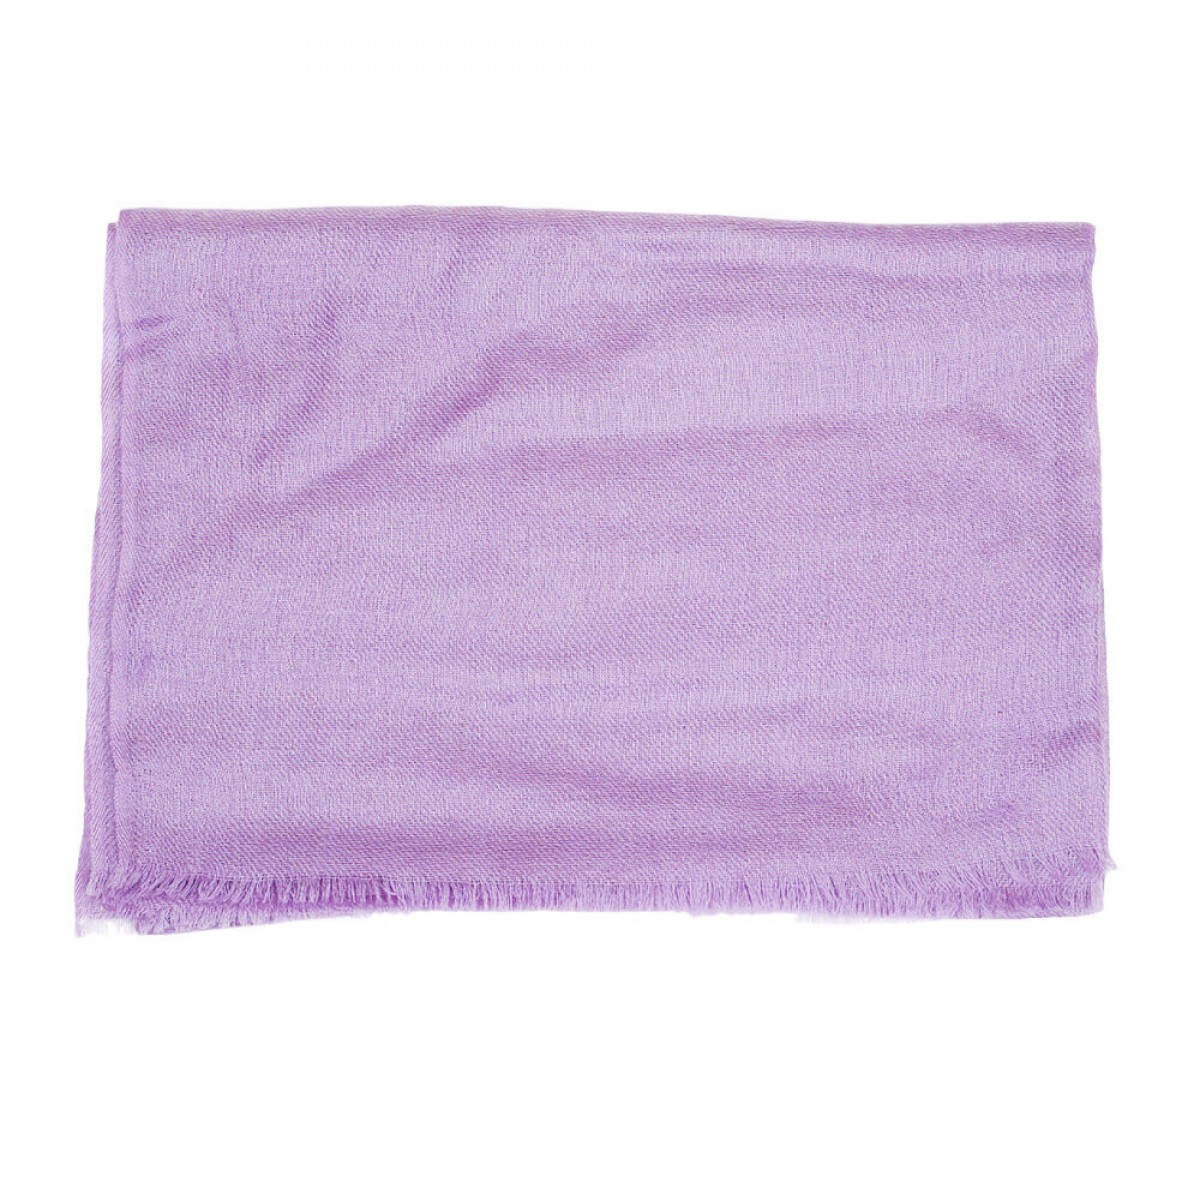 Sheer Pashmina Scarf - Mauve Purple